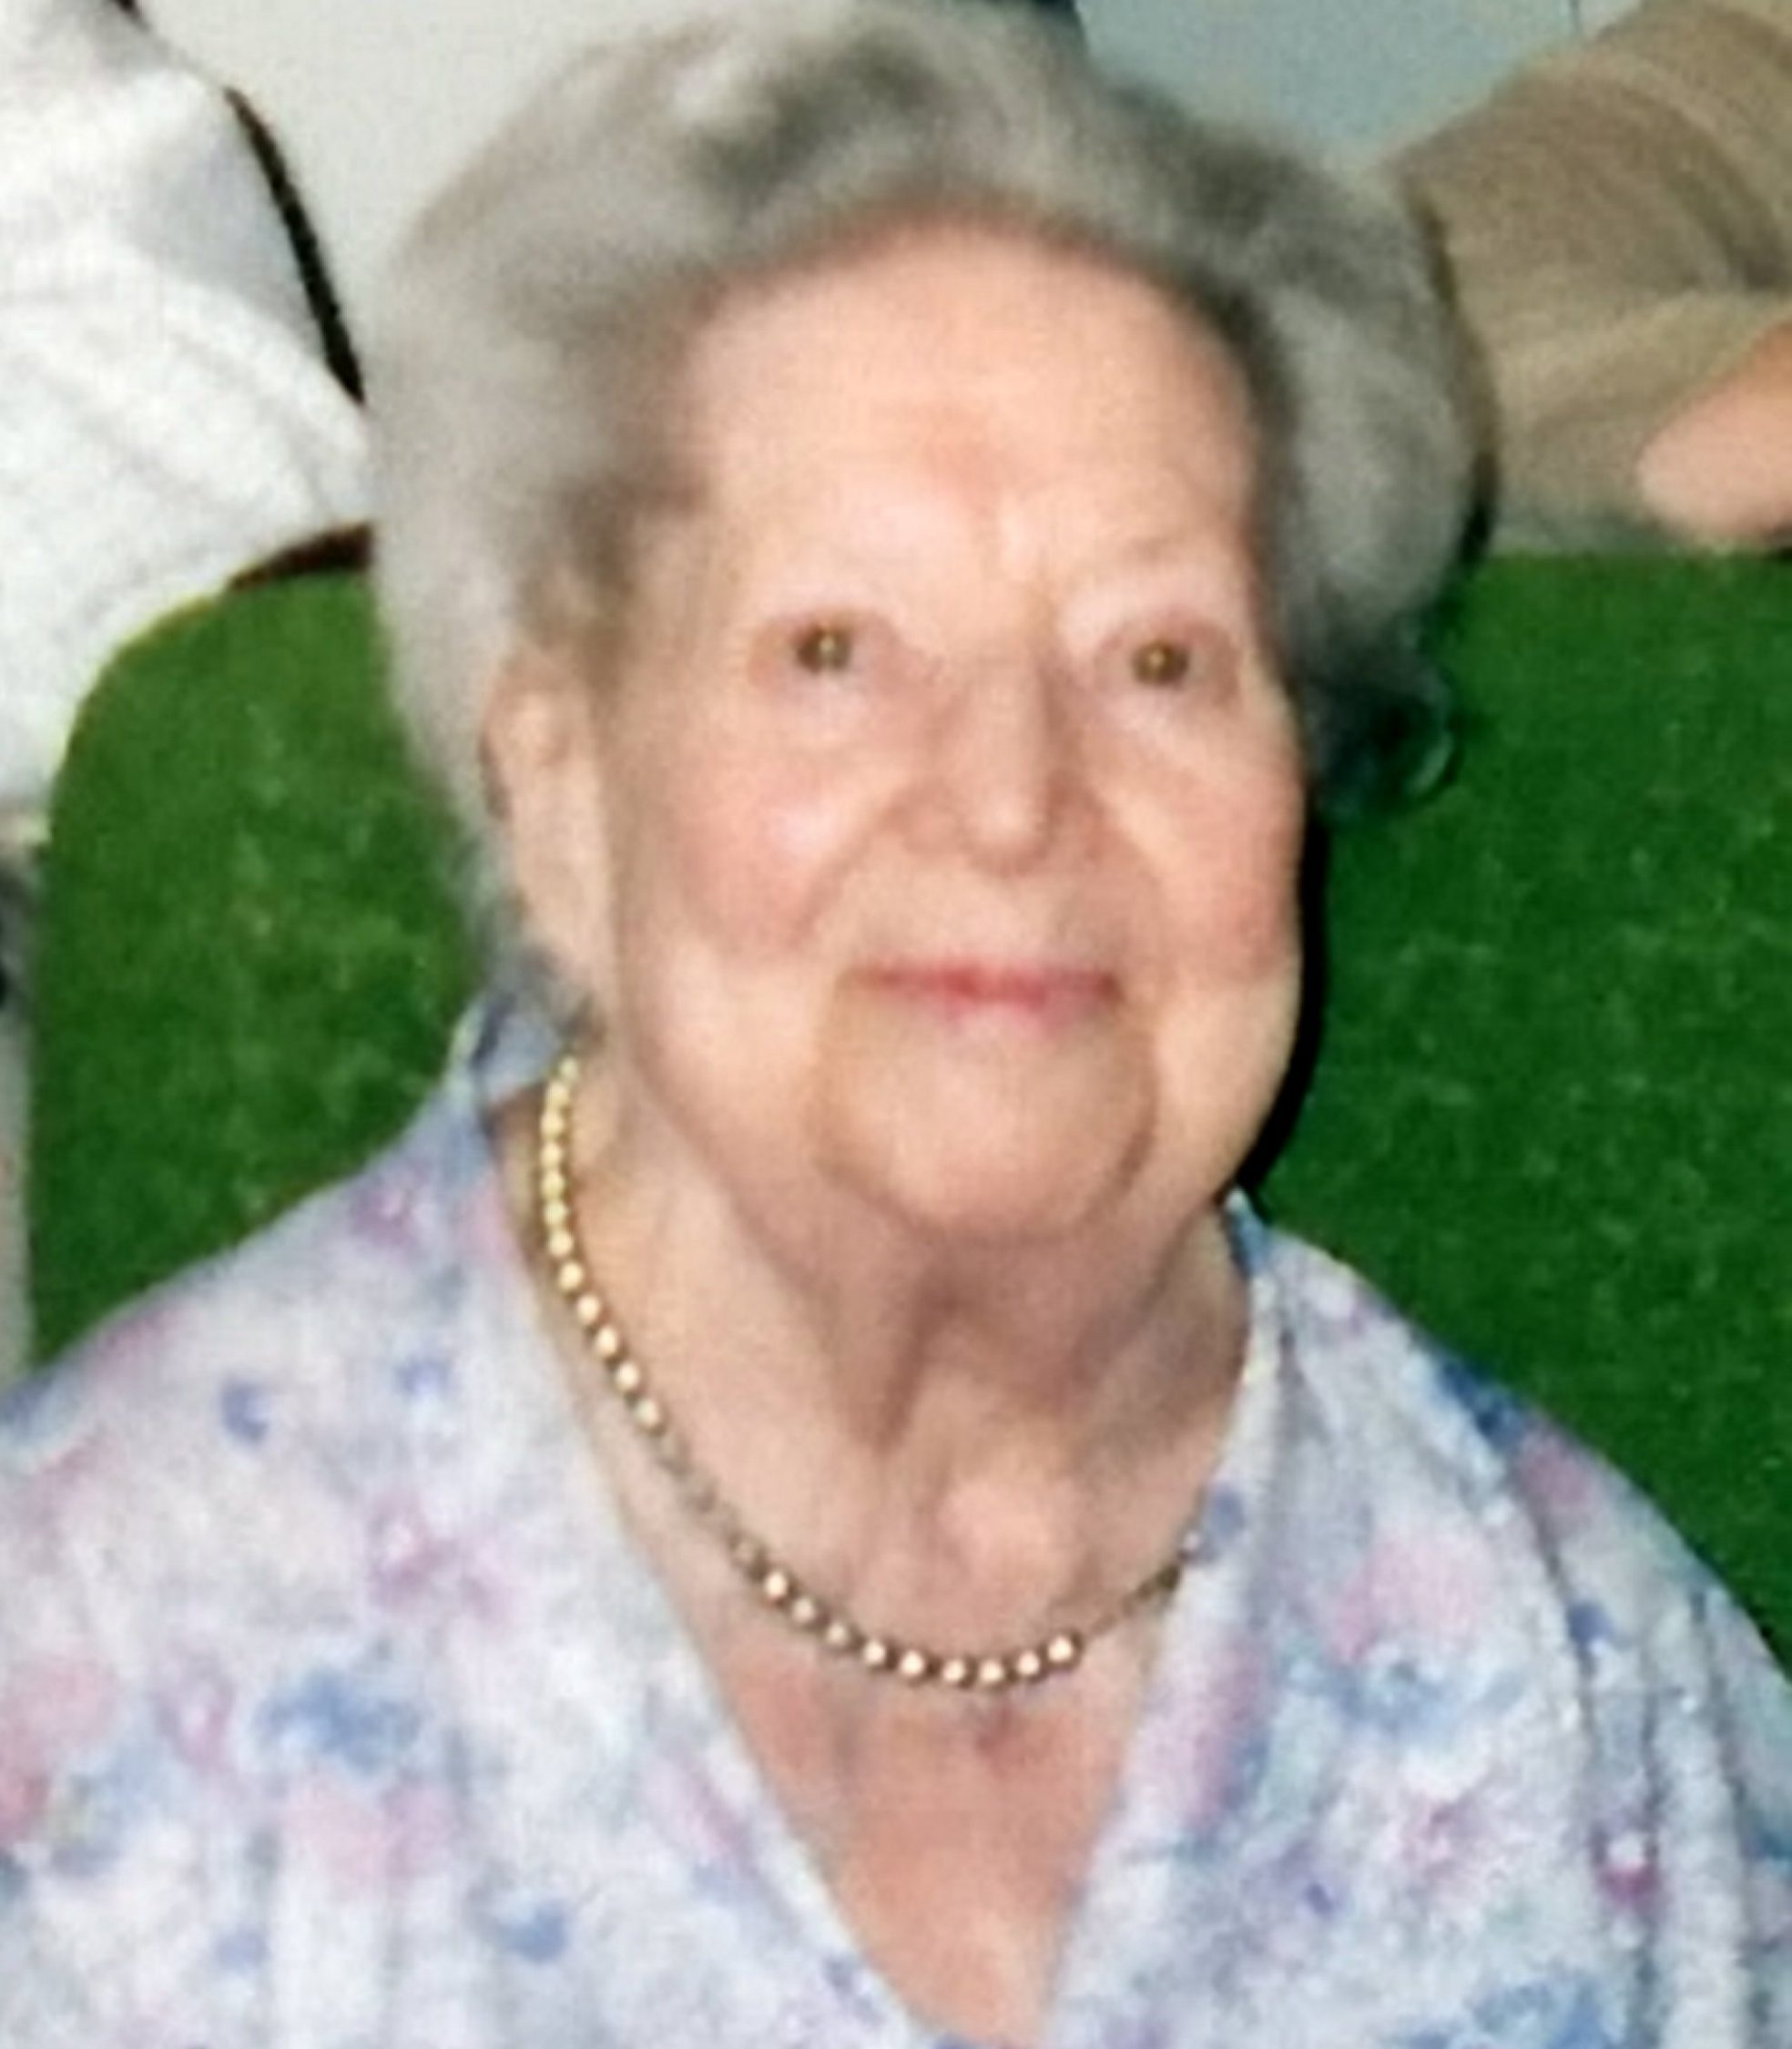 Collect of Mary Garvey,94.See SWNS story SWLEtheft.A despicable thief has admitted stealing more than ?100k from his mother-in-law -- a widowed war hero who was dying from dementia.Heartless Ian Downs, 66, pocketed ?95,000 from frail Mary Garvey, 94, before claiming a further ?20,000 in life insurance policies following her death in May 2013.She had previously served in the British Army Catering Corps during the Second War World where she met her future husband Anthony who was a soldier in the Durham Light Infantry. During her time in the military, she travelled across Europe and was even credited with preventing the explosion of a bomb on an allied train.